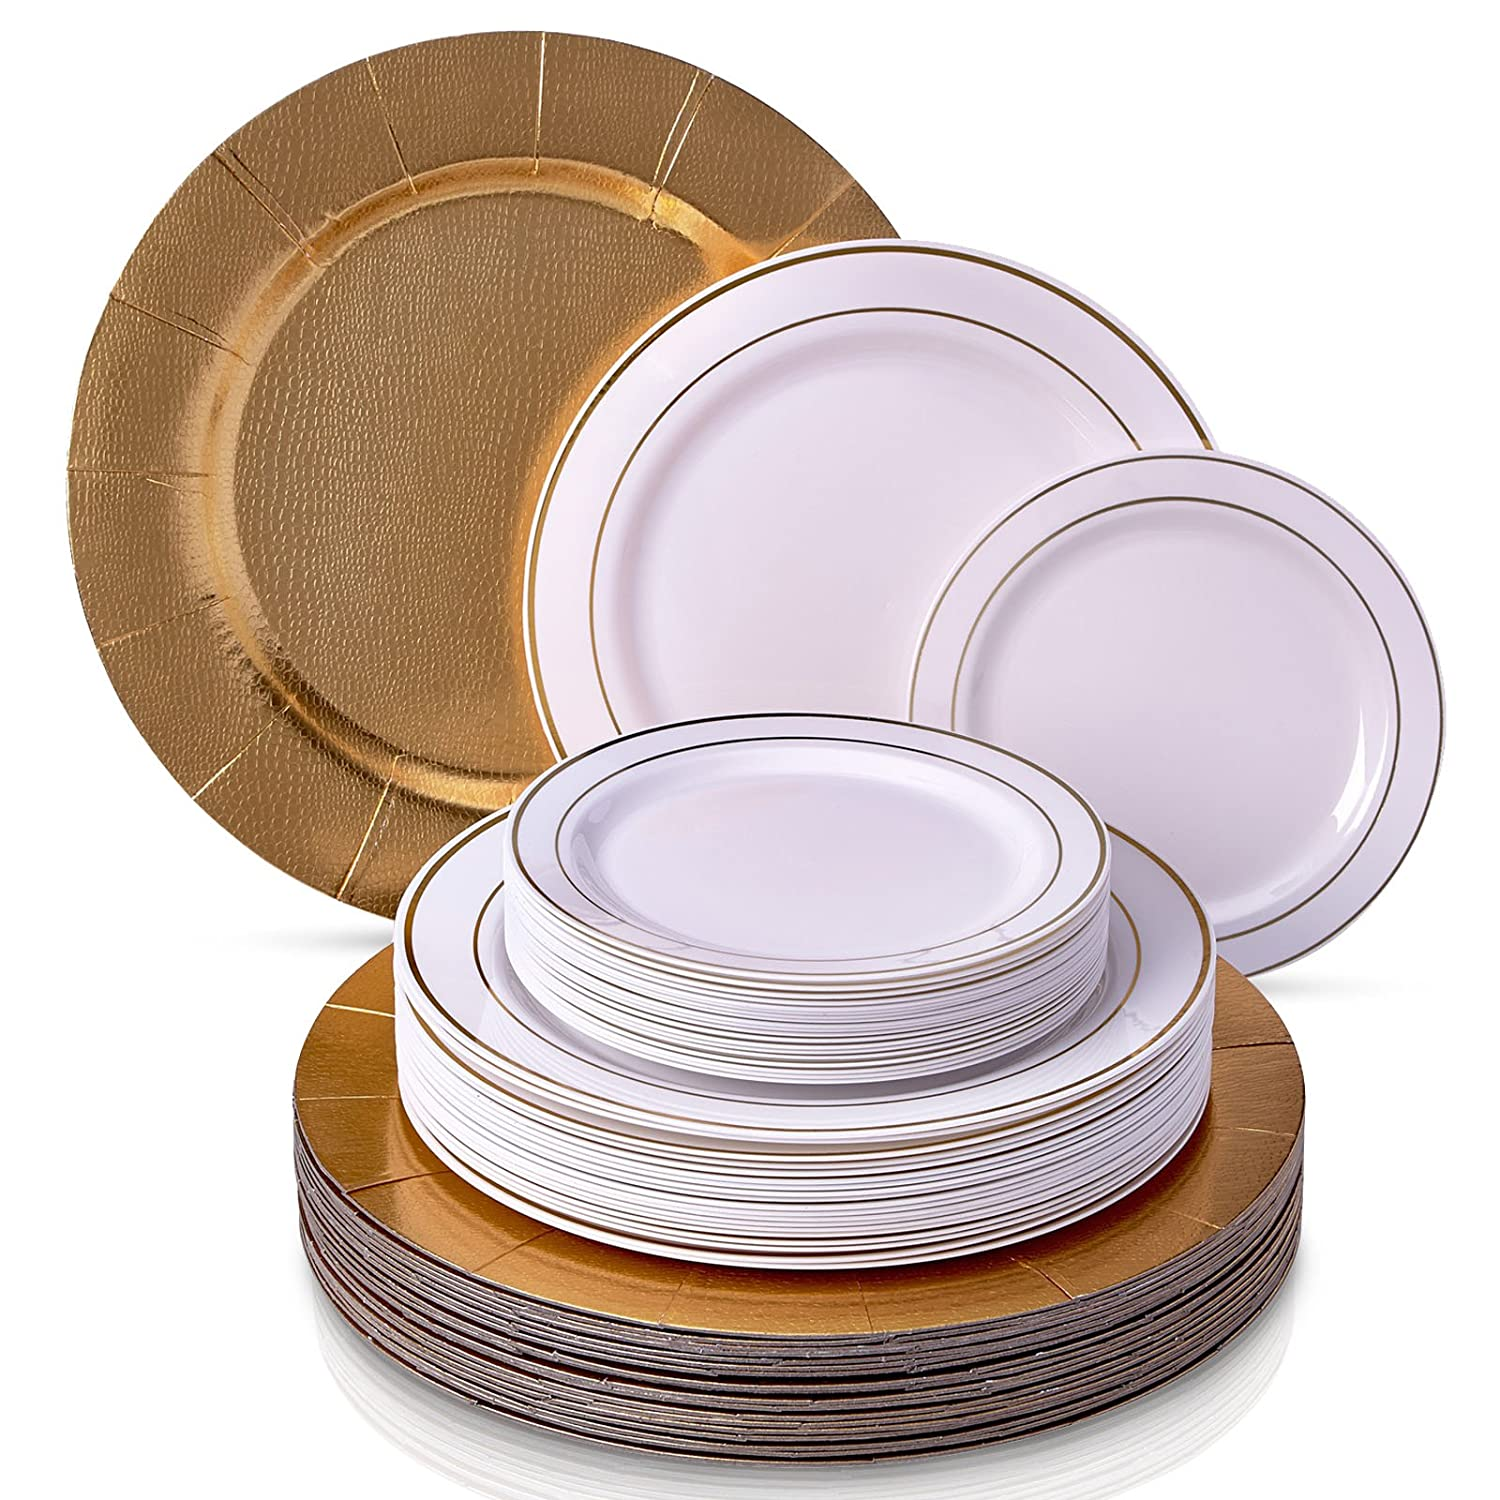 CLASSIC GOLDEN GLARE COLLECTION DINNERWARE SET|240 PC SET|80 Charger Plates|80 Dinner Plates|80 Salad Plates|Durable Plastic Dishes|Elegant Fine China Look|for Upscale Wedding and Dining(White/Gold)